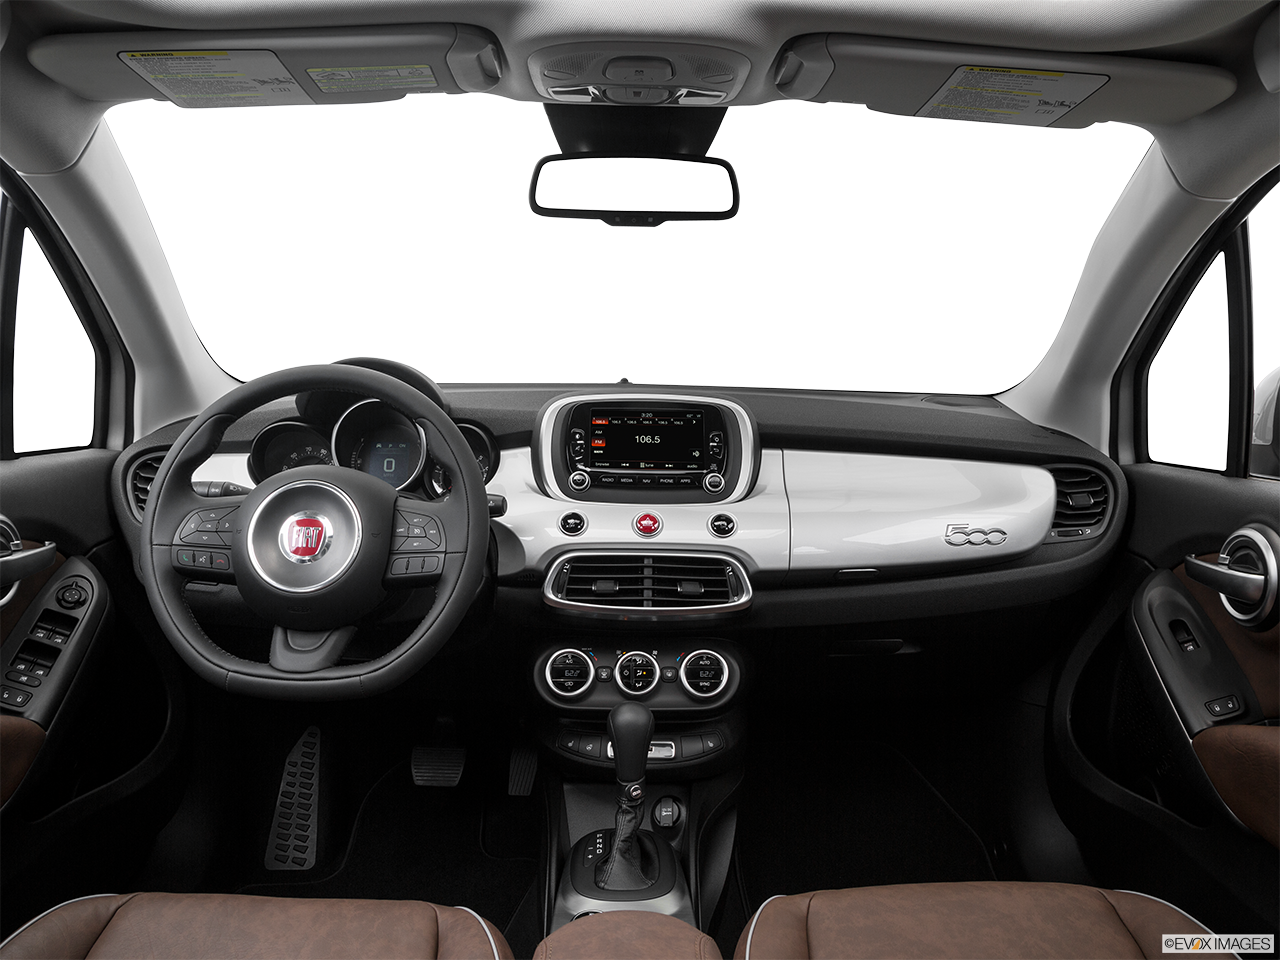 Interior View Of 2017 Fiat 500X in Birmingham